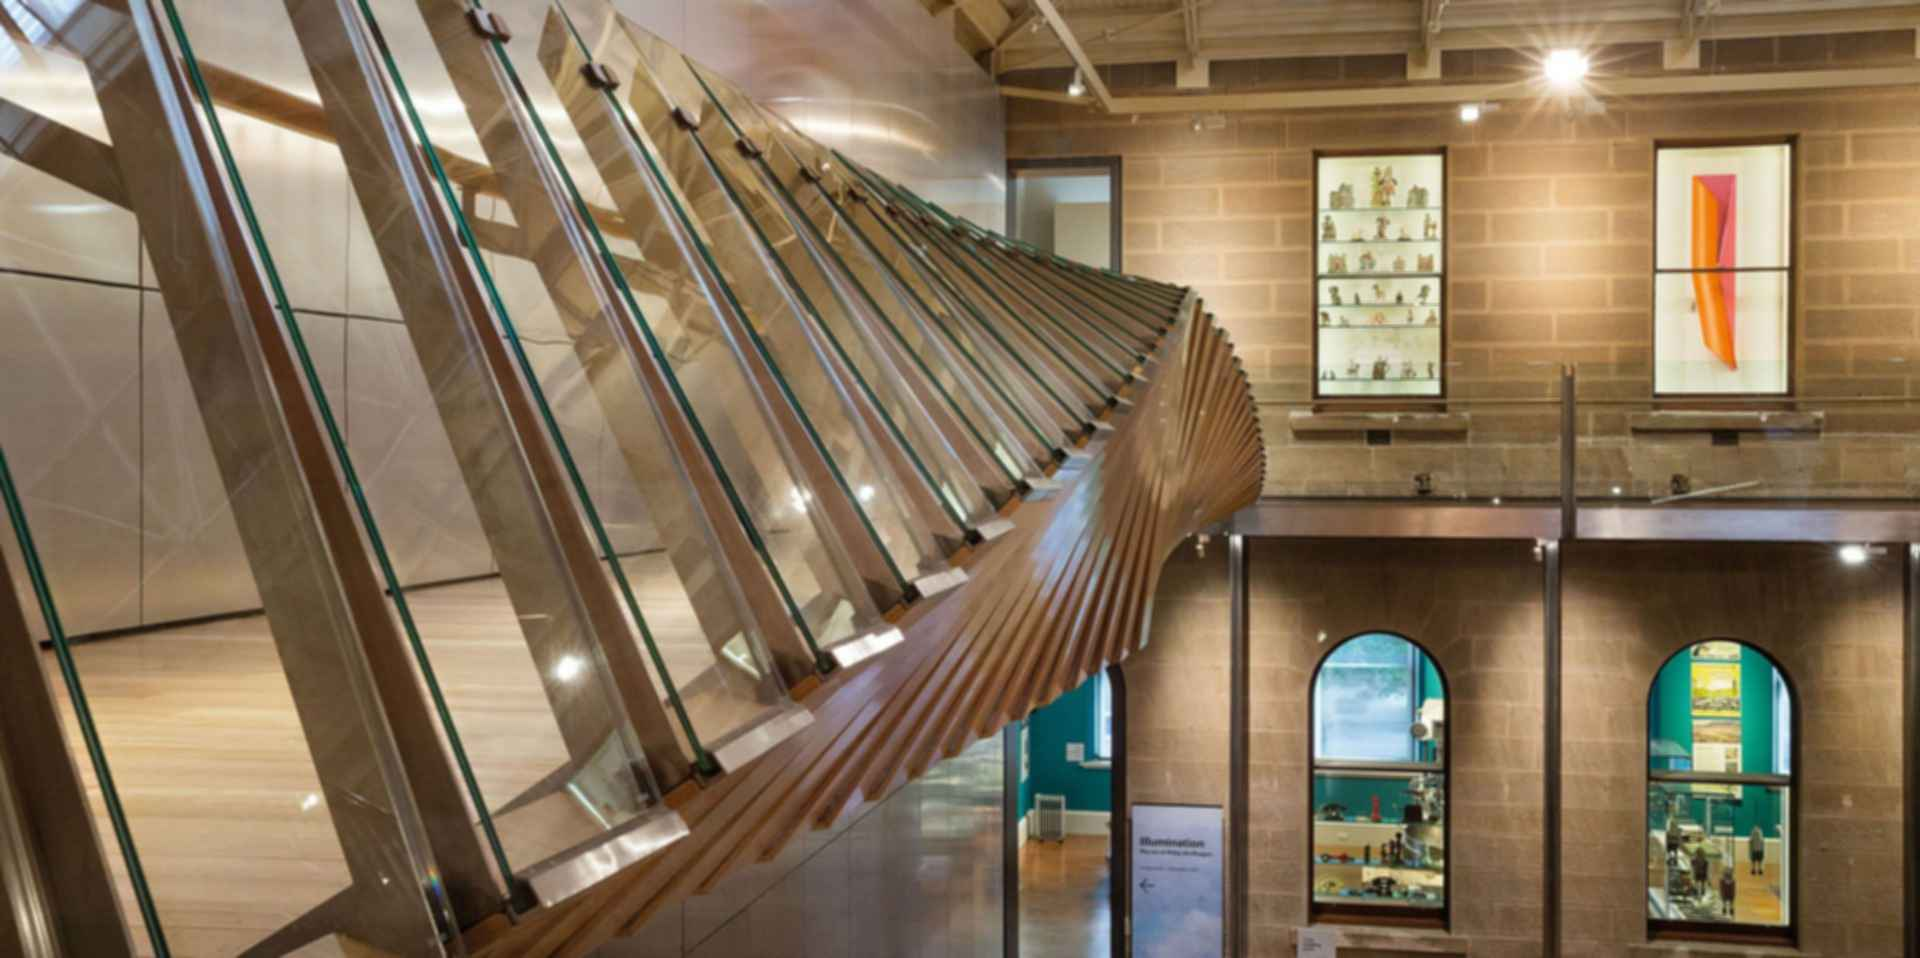 Tasmanian Museum and Art Gallery - Interior/Handrail Structure